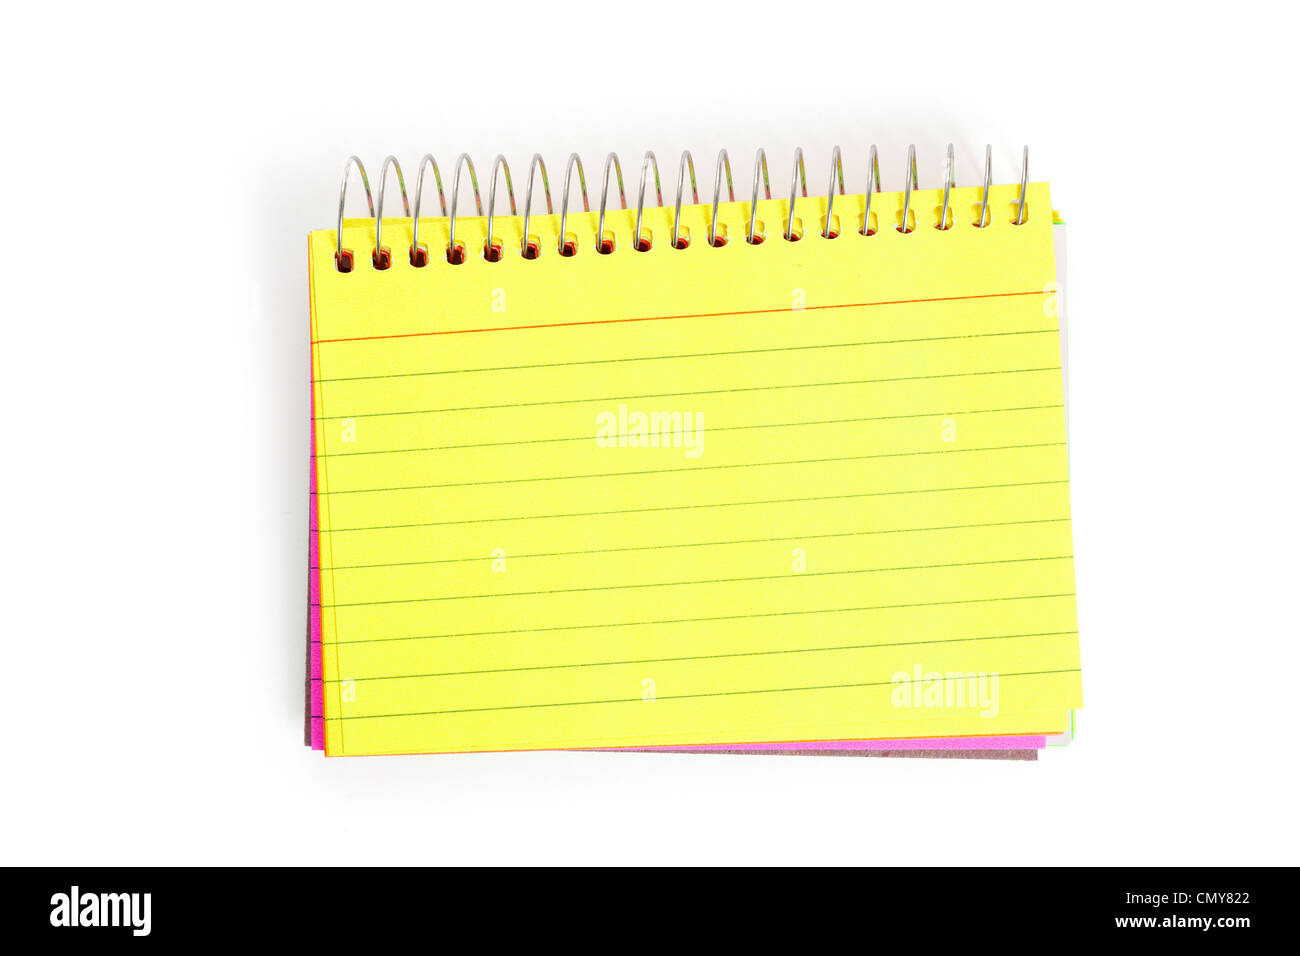 Note Pad with white background - Stock Image